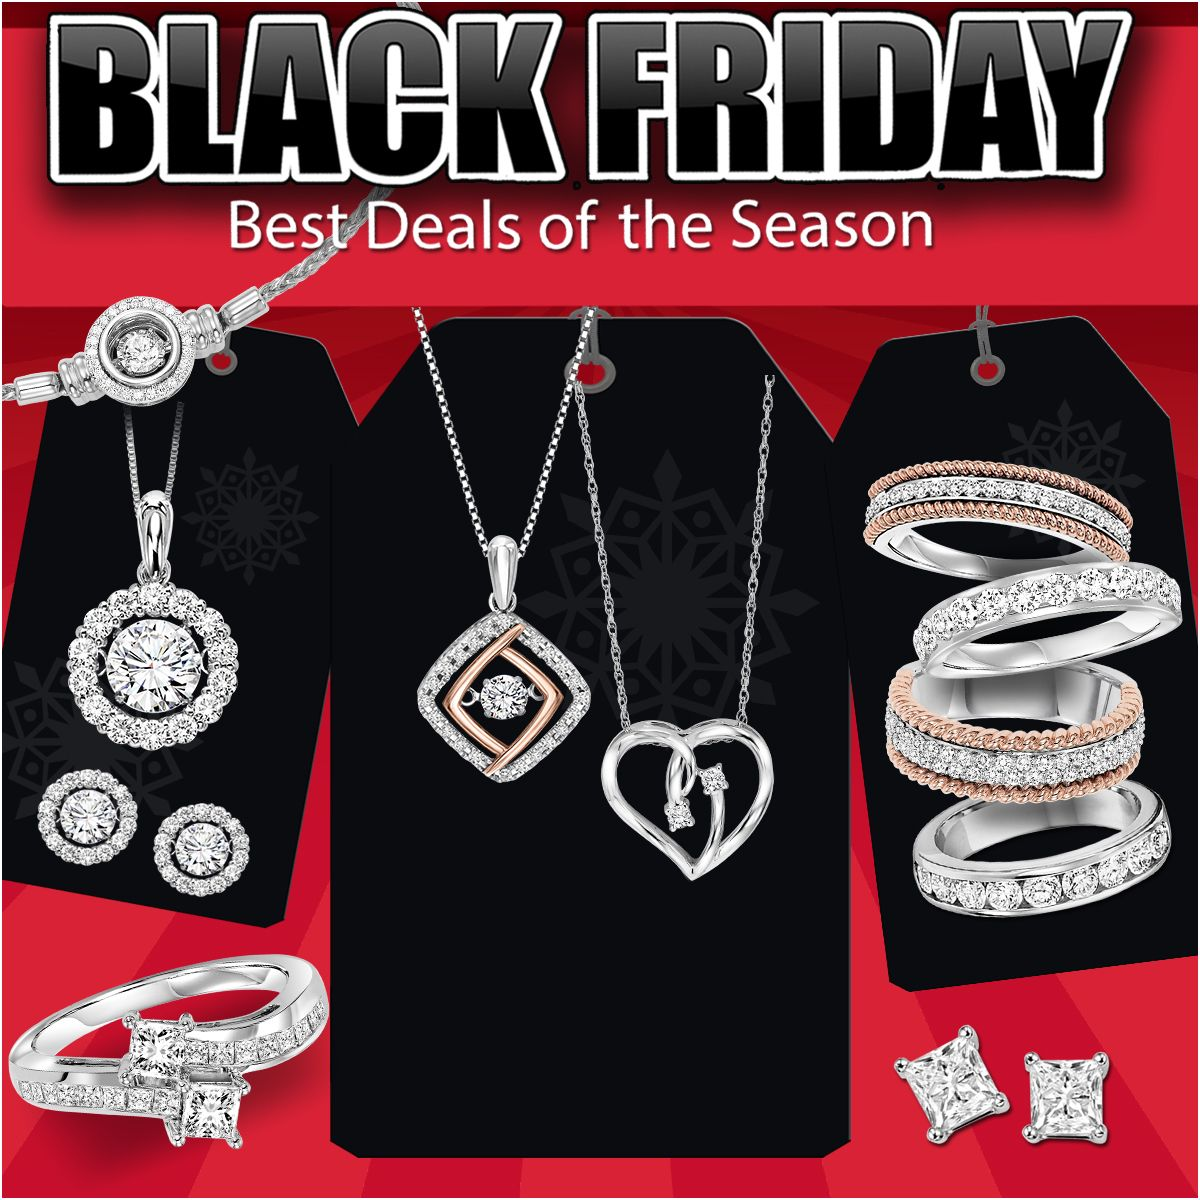 25+ Jewelry store black friday deals viral